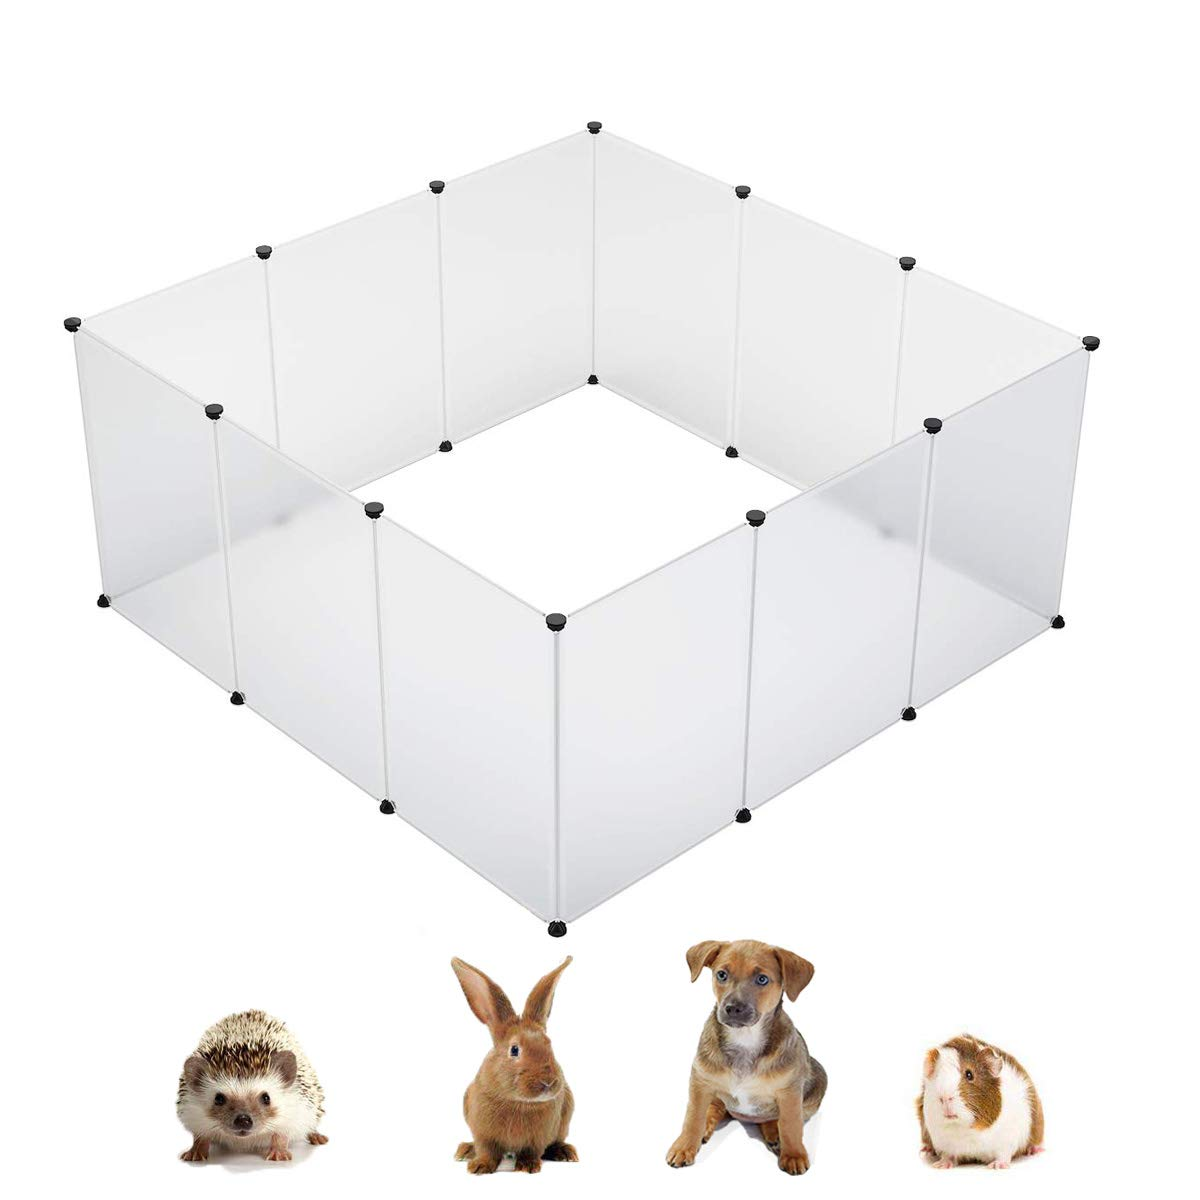 KOUSI Small Animal Pen Indoor Fence Animal Pen Plastic Fence Large Dog Pen Plastic Play Yard Plastic Dog Pen Rabbit Pen Small Pet Playpen, Large 59x59x27.6(in), Transparent by KOUSI